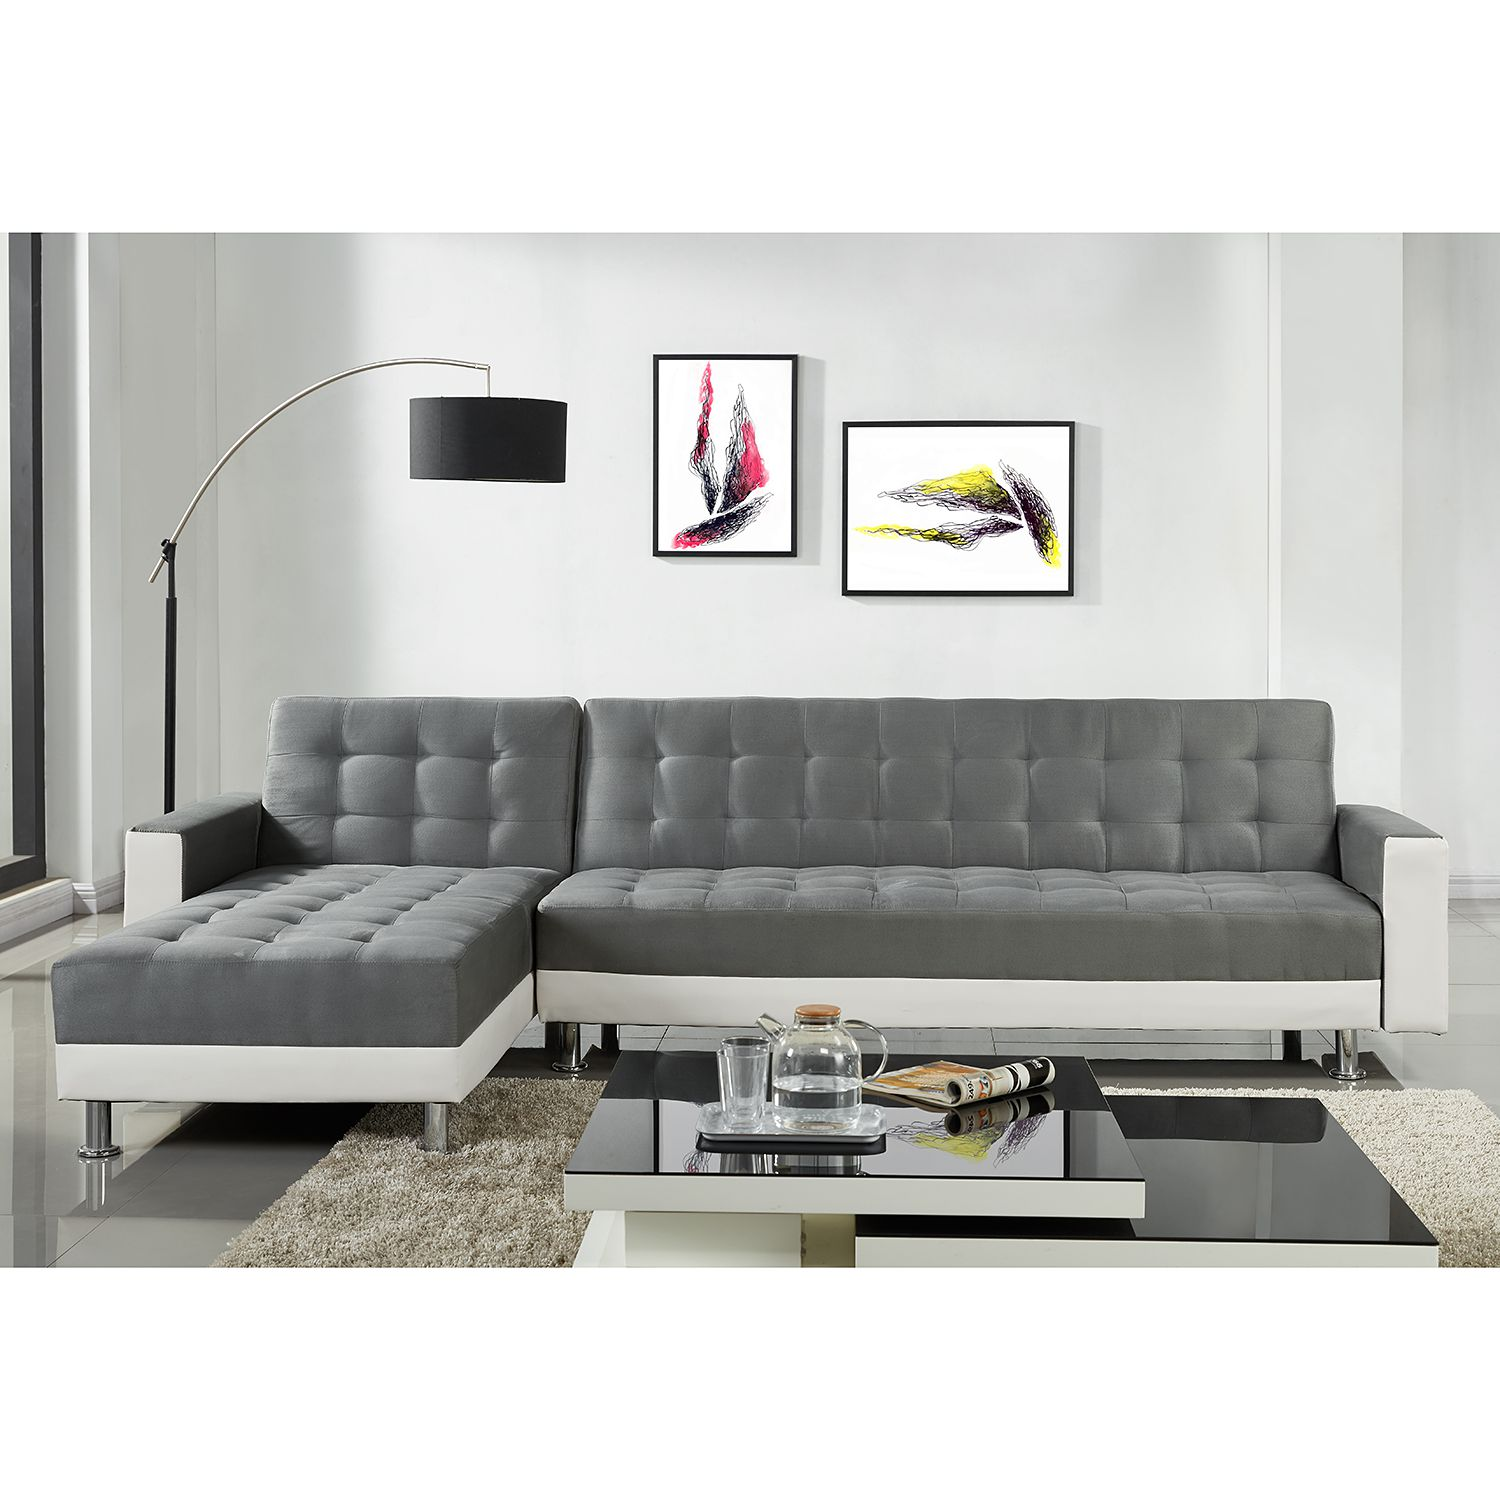 ecksofa corby mit schlaffunktion kunstleder microfaser wei couch ebay. Black Bedroom Furniture Sets. Home Design Ideas